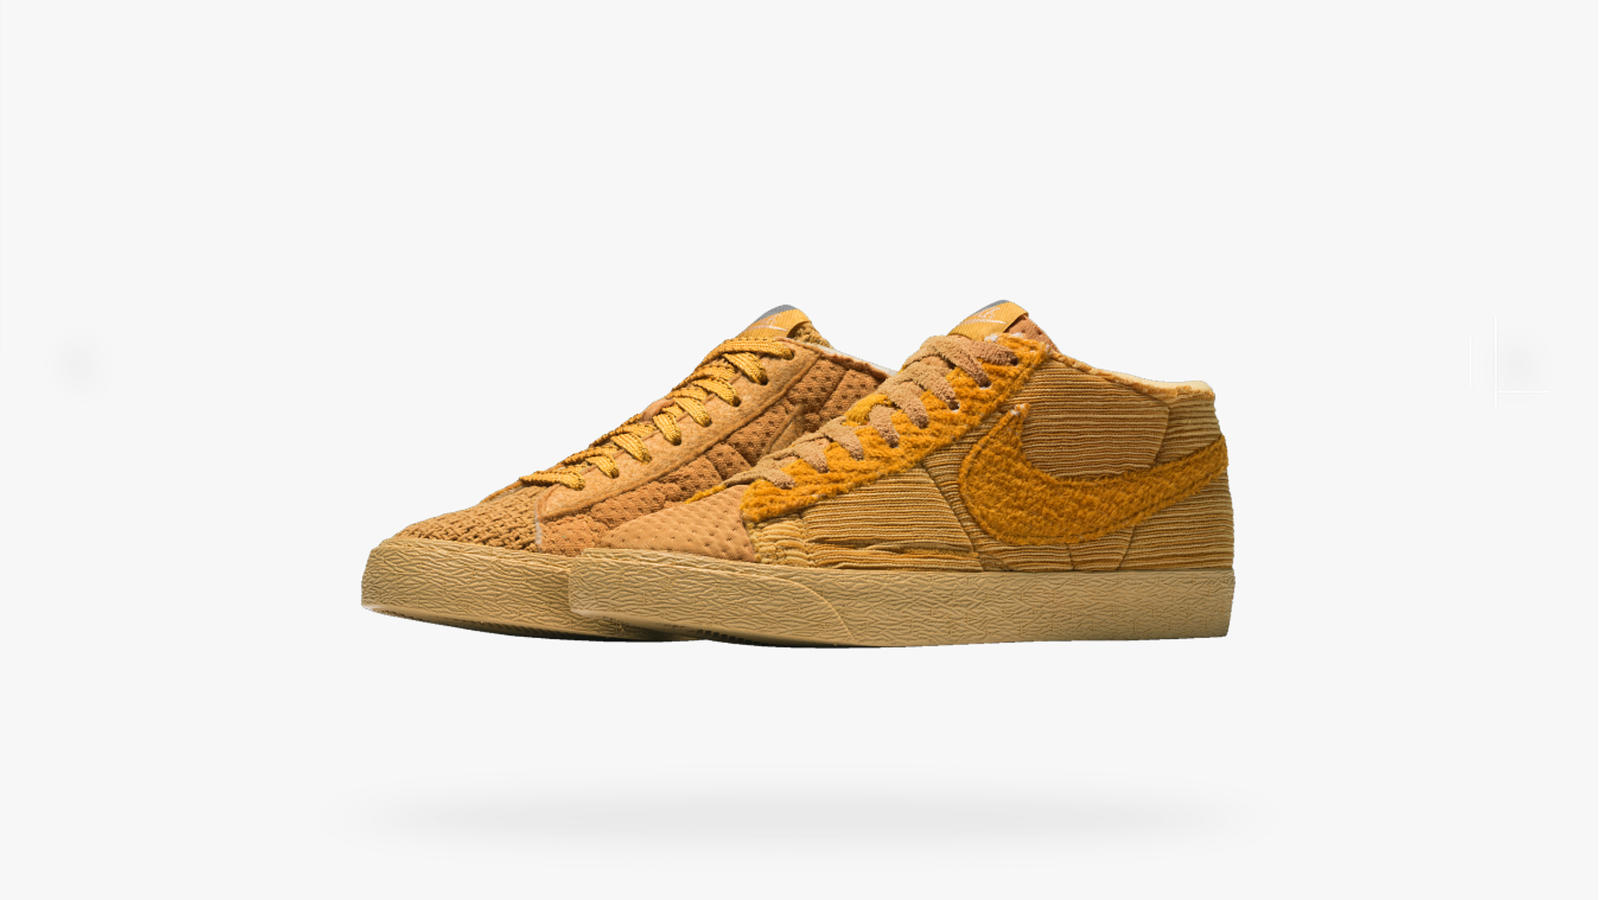 Nike Blazer CPFM Sponge By You official Release Info Nike News